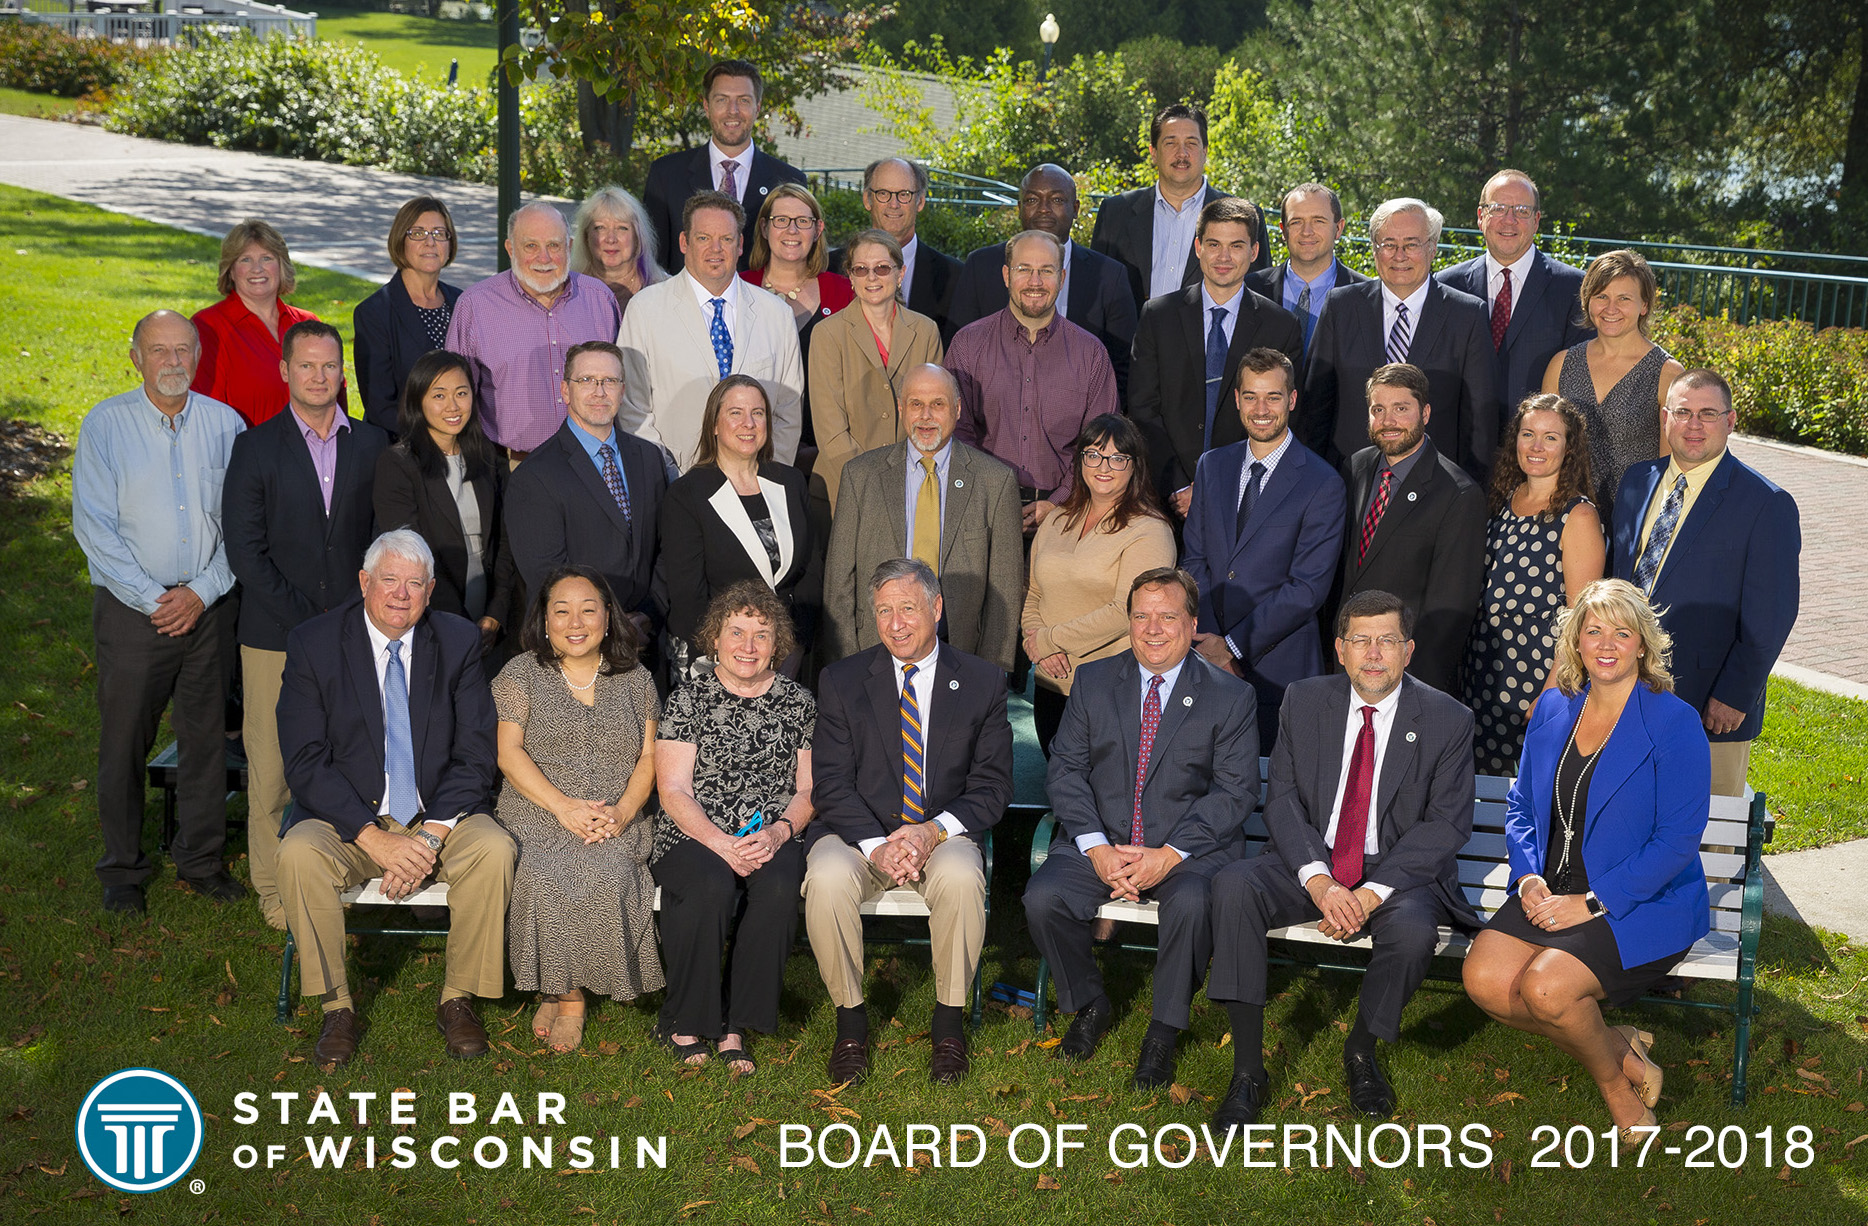 Board of Governors 2017-2018